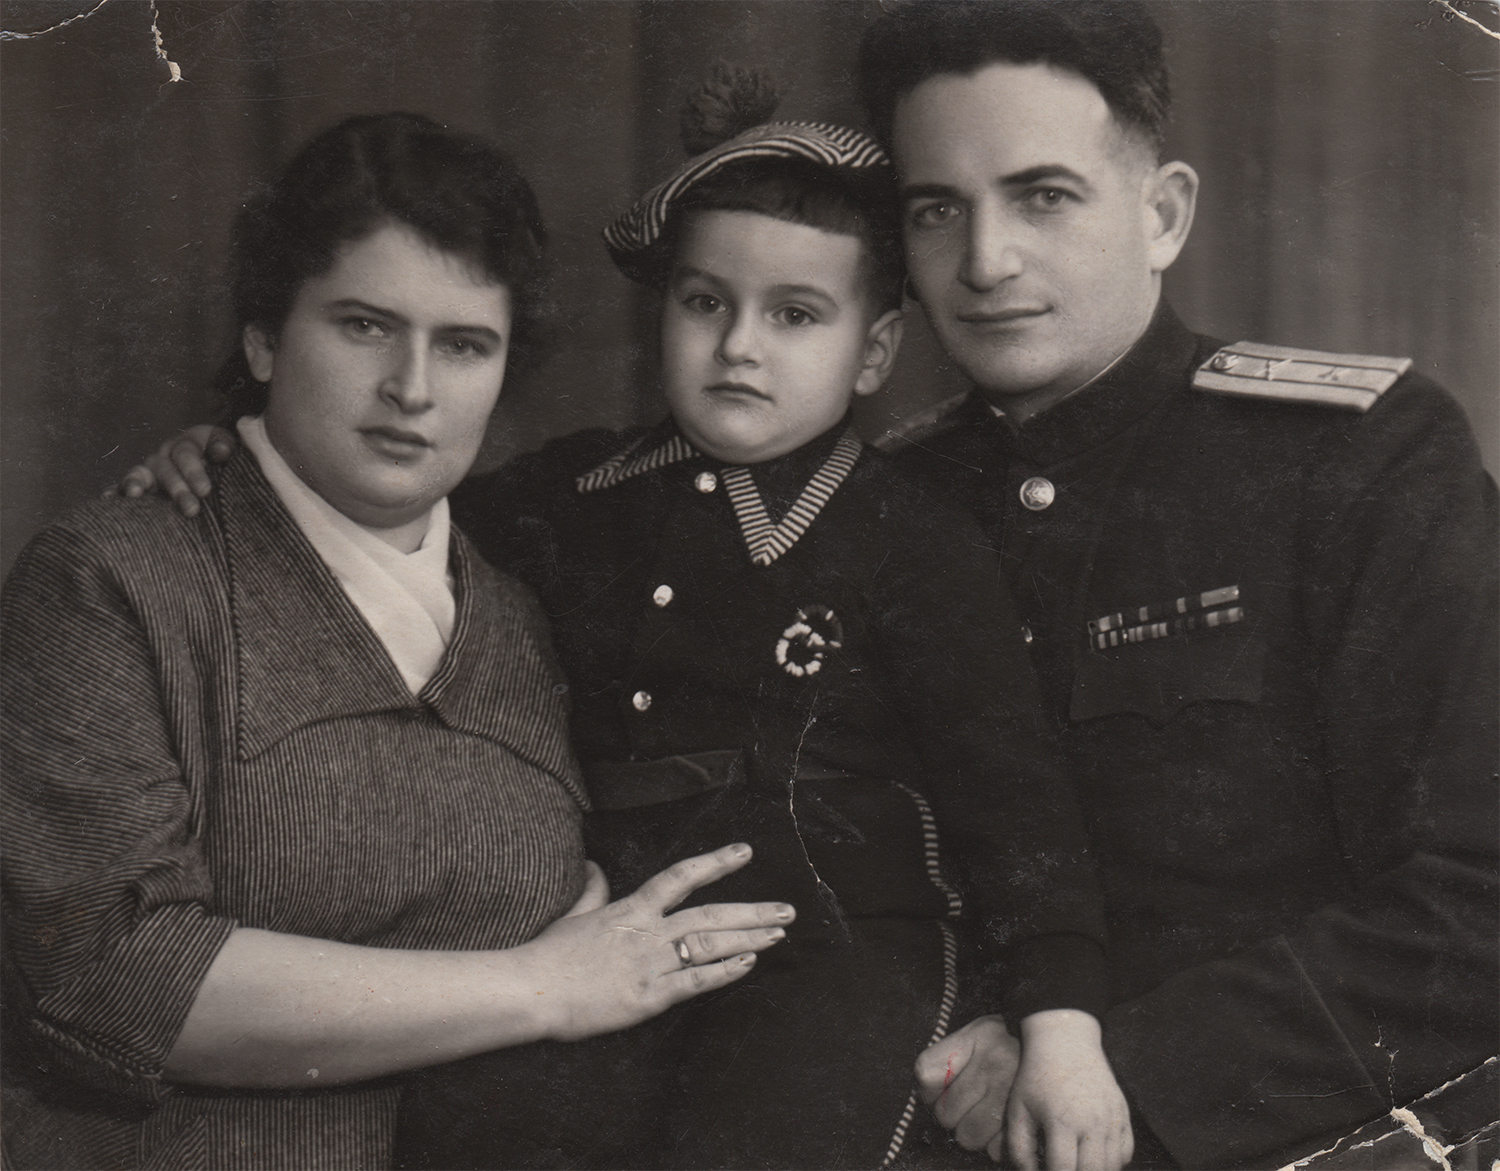 Yona with his wife, Sofia, and son Dmitry. Kyiv, 1956